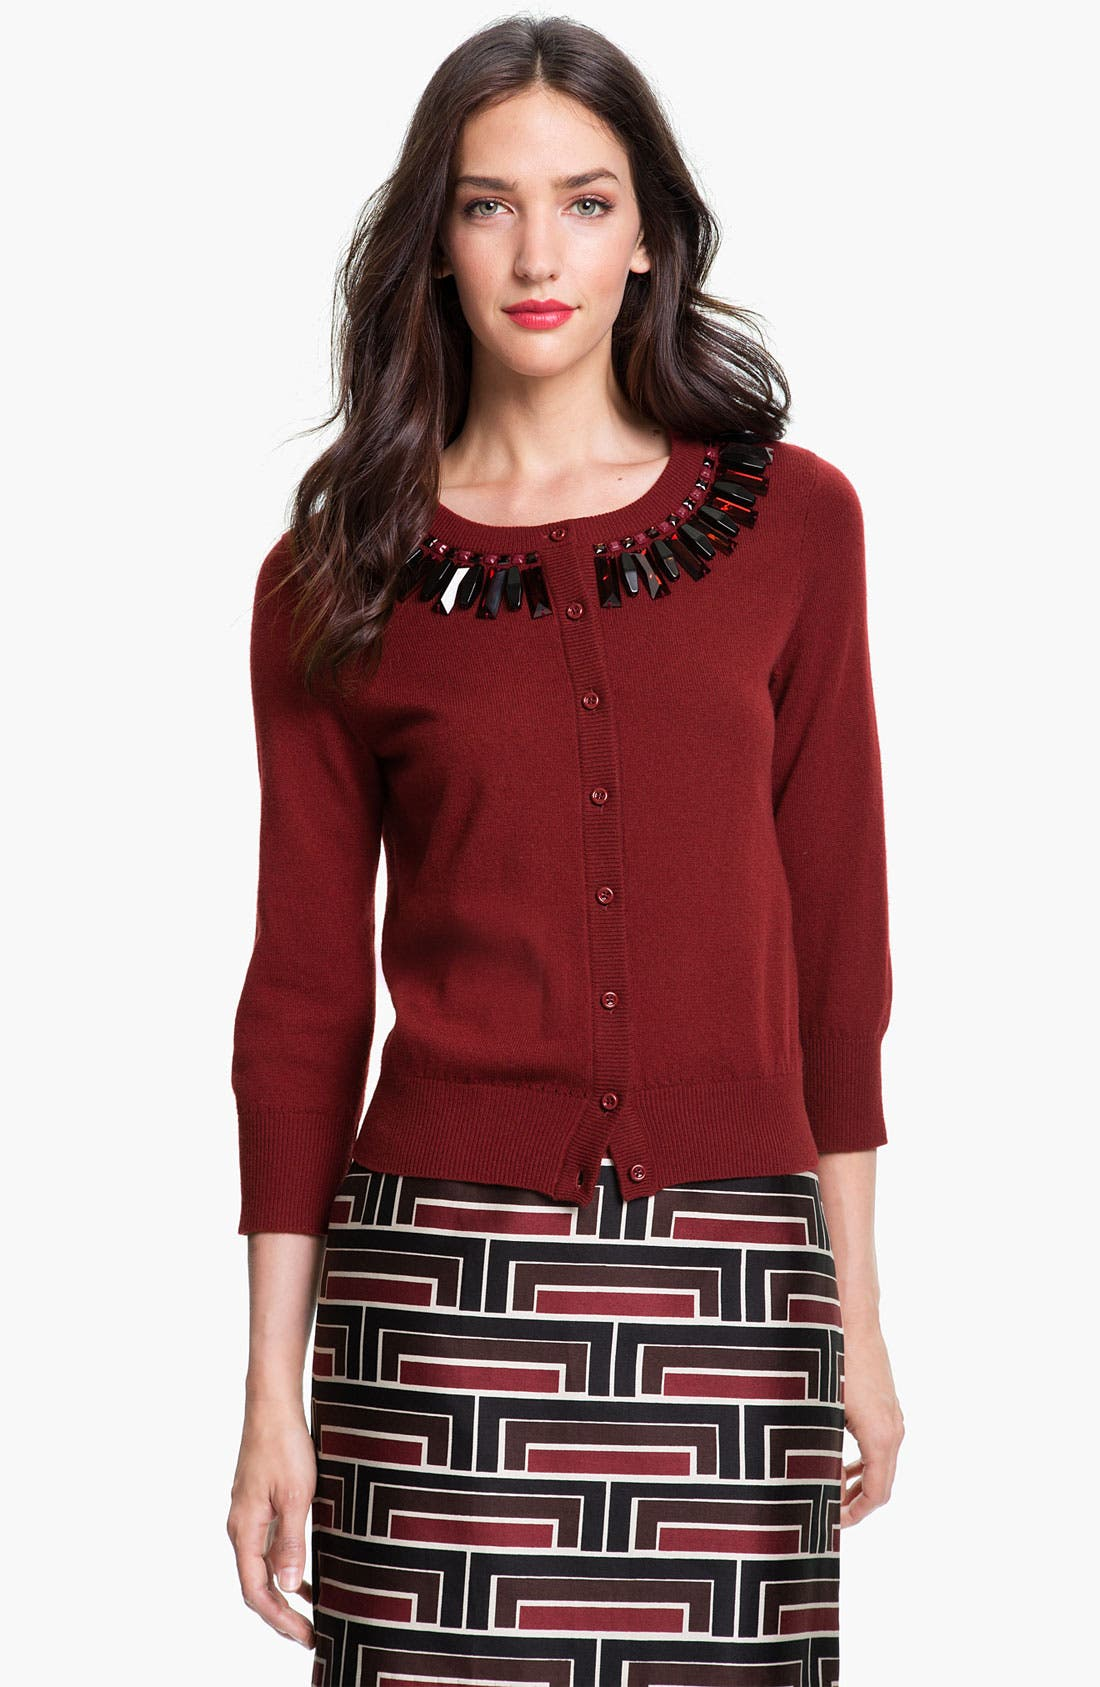 Alternate Image 1 Selected - kate spade new york 'kati' embellished cardigan